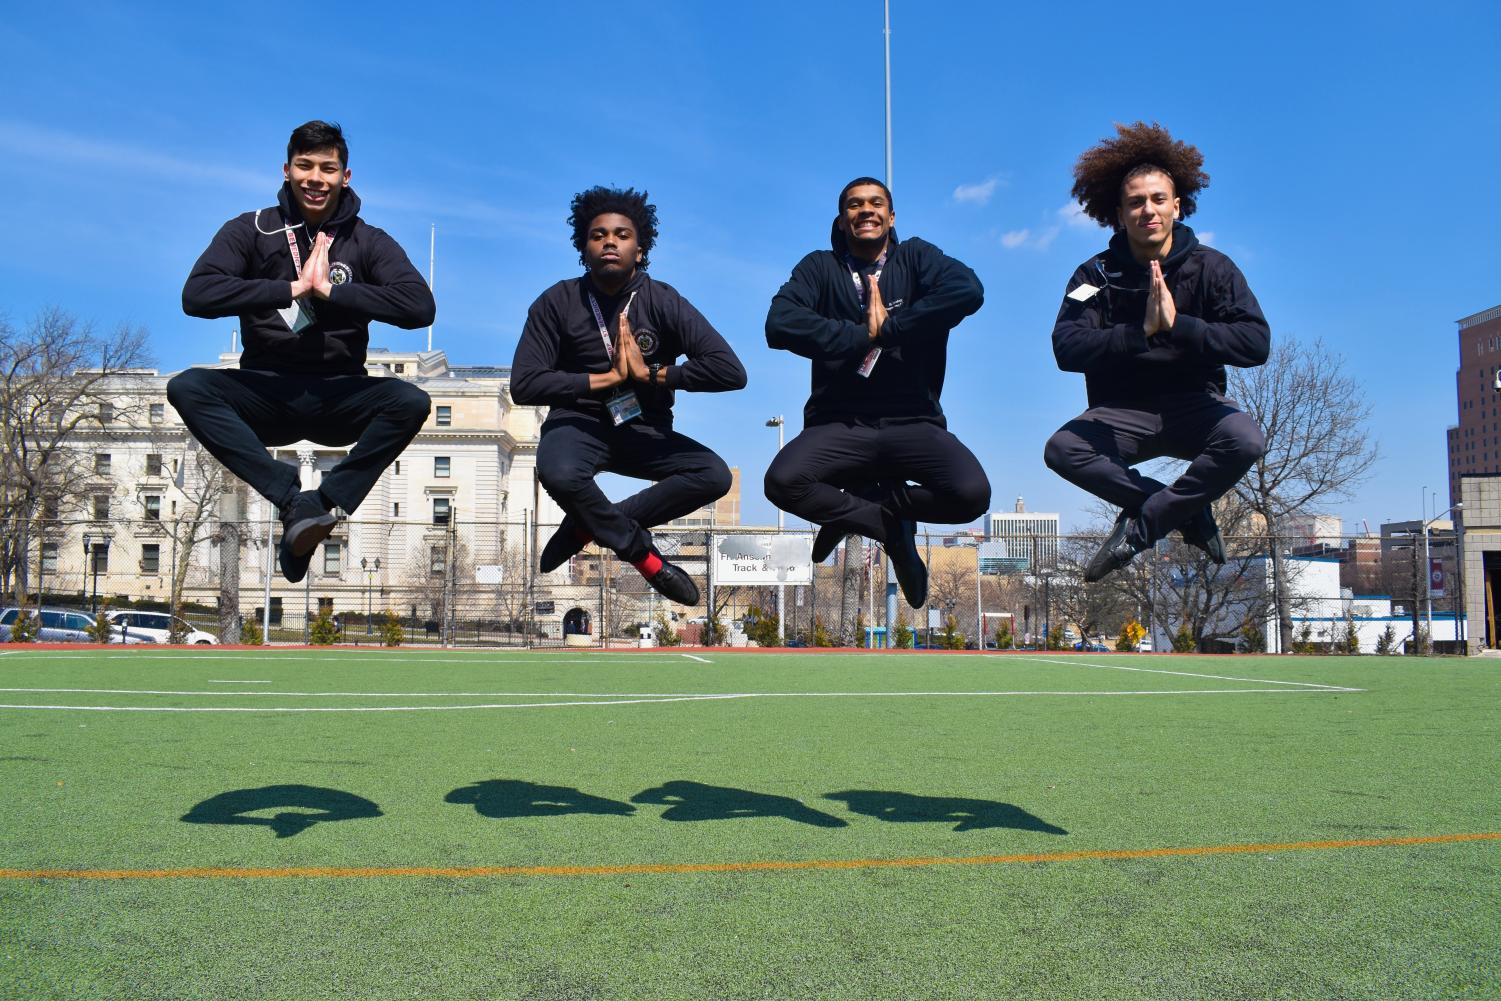 To illustrate the cover photo idea to the ED students, SBP's UD students first demonstrated their leaping technique, working in a momentary lotus position for good measure. From left, Michael Melendez,  Francis Jean-Paul, Jalen Cabrera, and Isaiah Sanchez